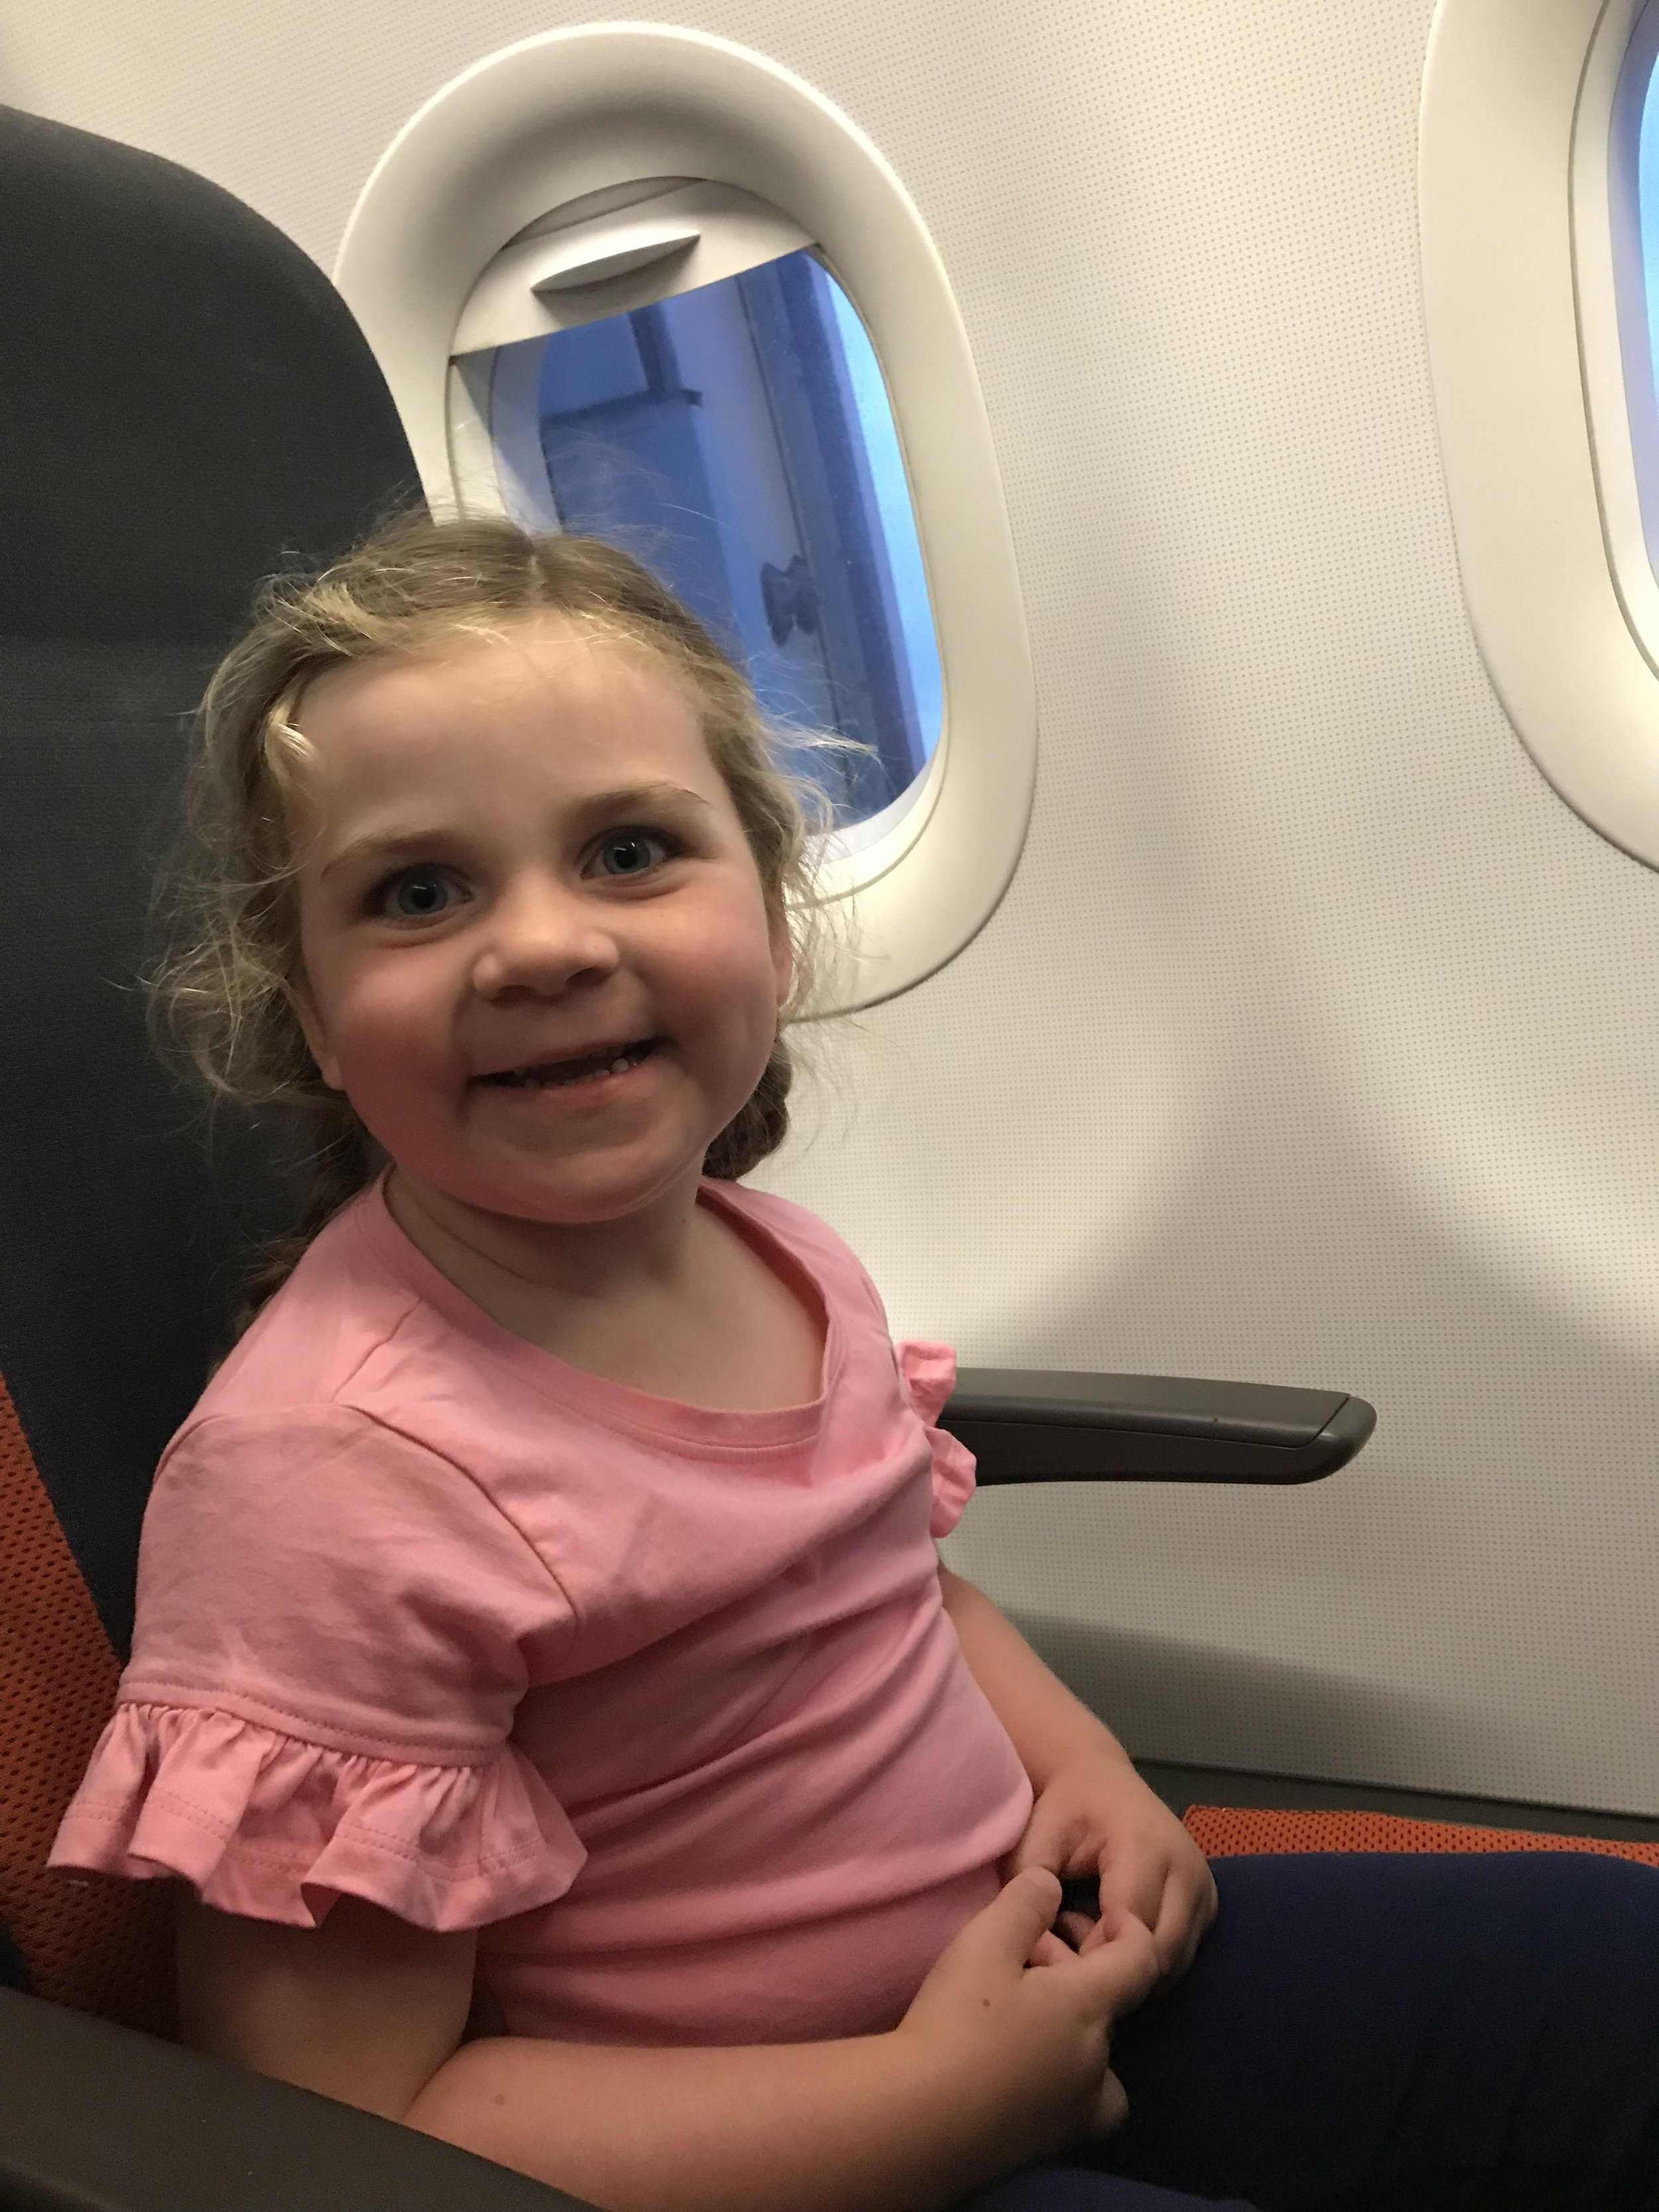 Sleepy eyes but smiling and ready for take-off!